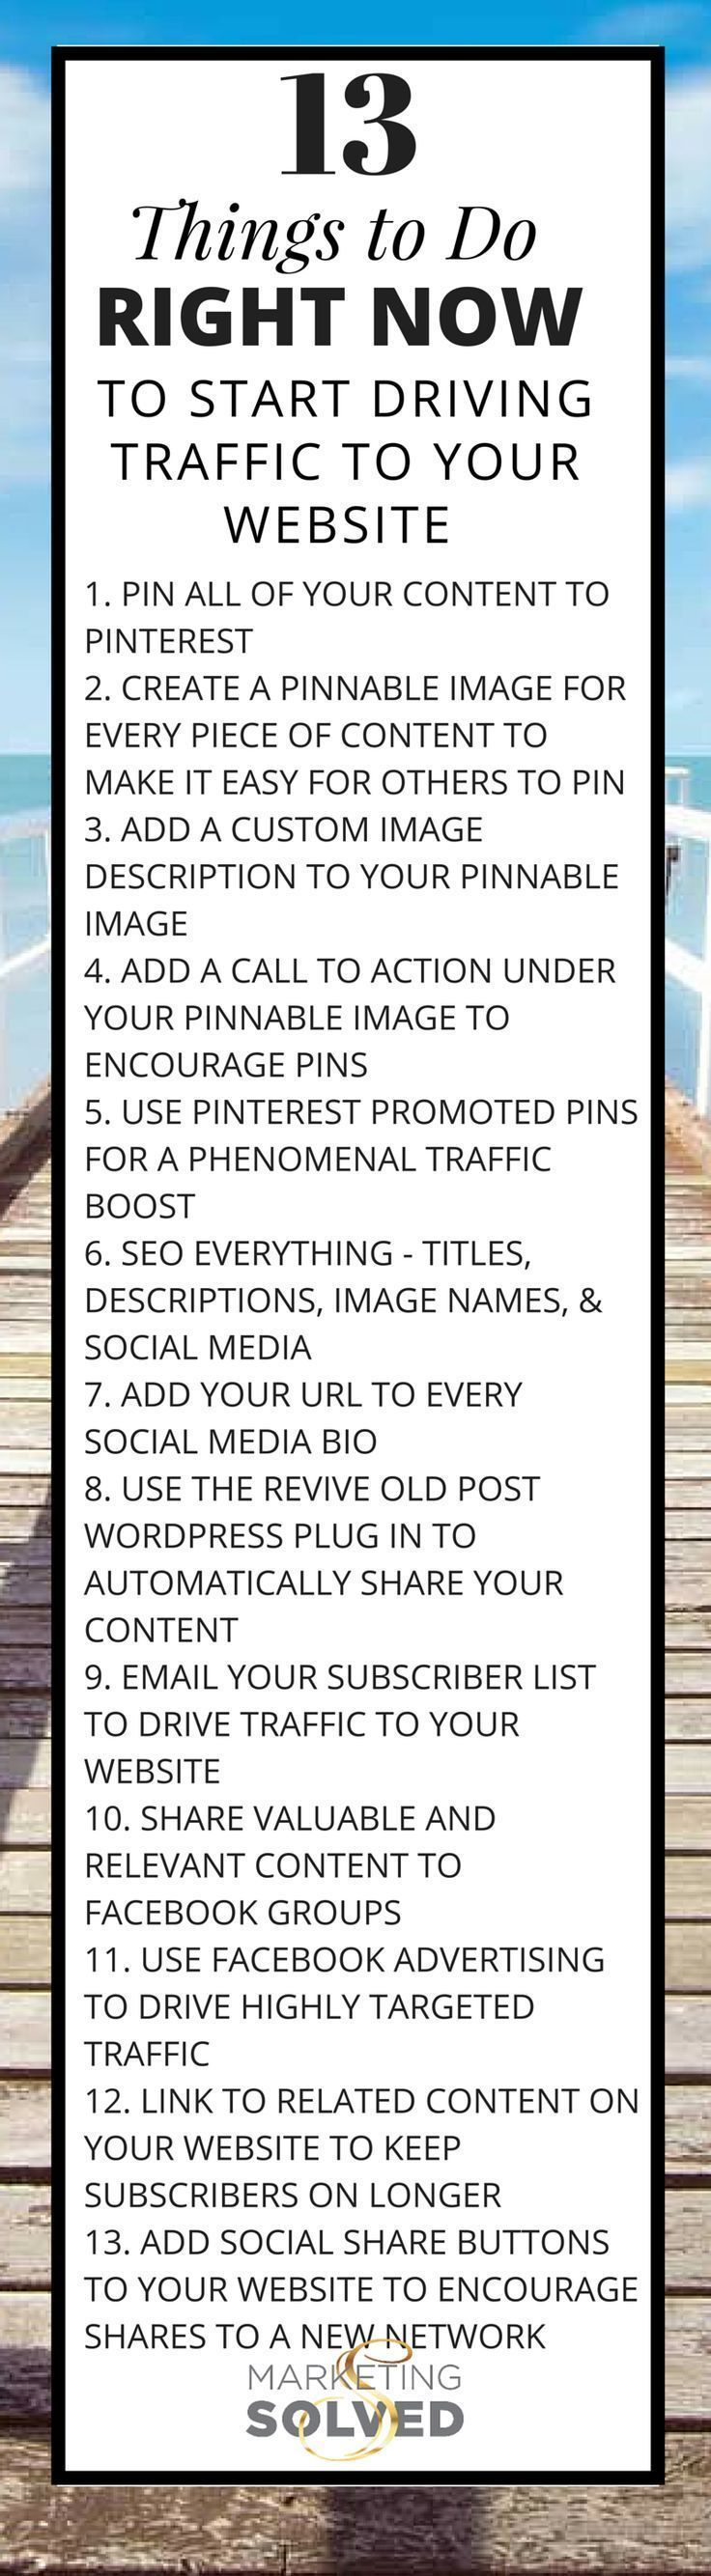 13 Things You Need to Do Right Now to Start Driving Traffic To Your Website - Grab the PDF at Marketing Solved Pinterest Tips for Small Businesses | Social Media Marketing Strategies For Small Businesses | Social Media Marketing Info for Small Business Owners www.MaritimeVintage.com #SocialMediaMarketingStrategies